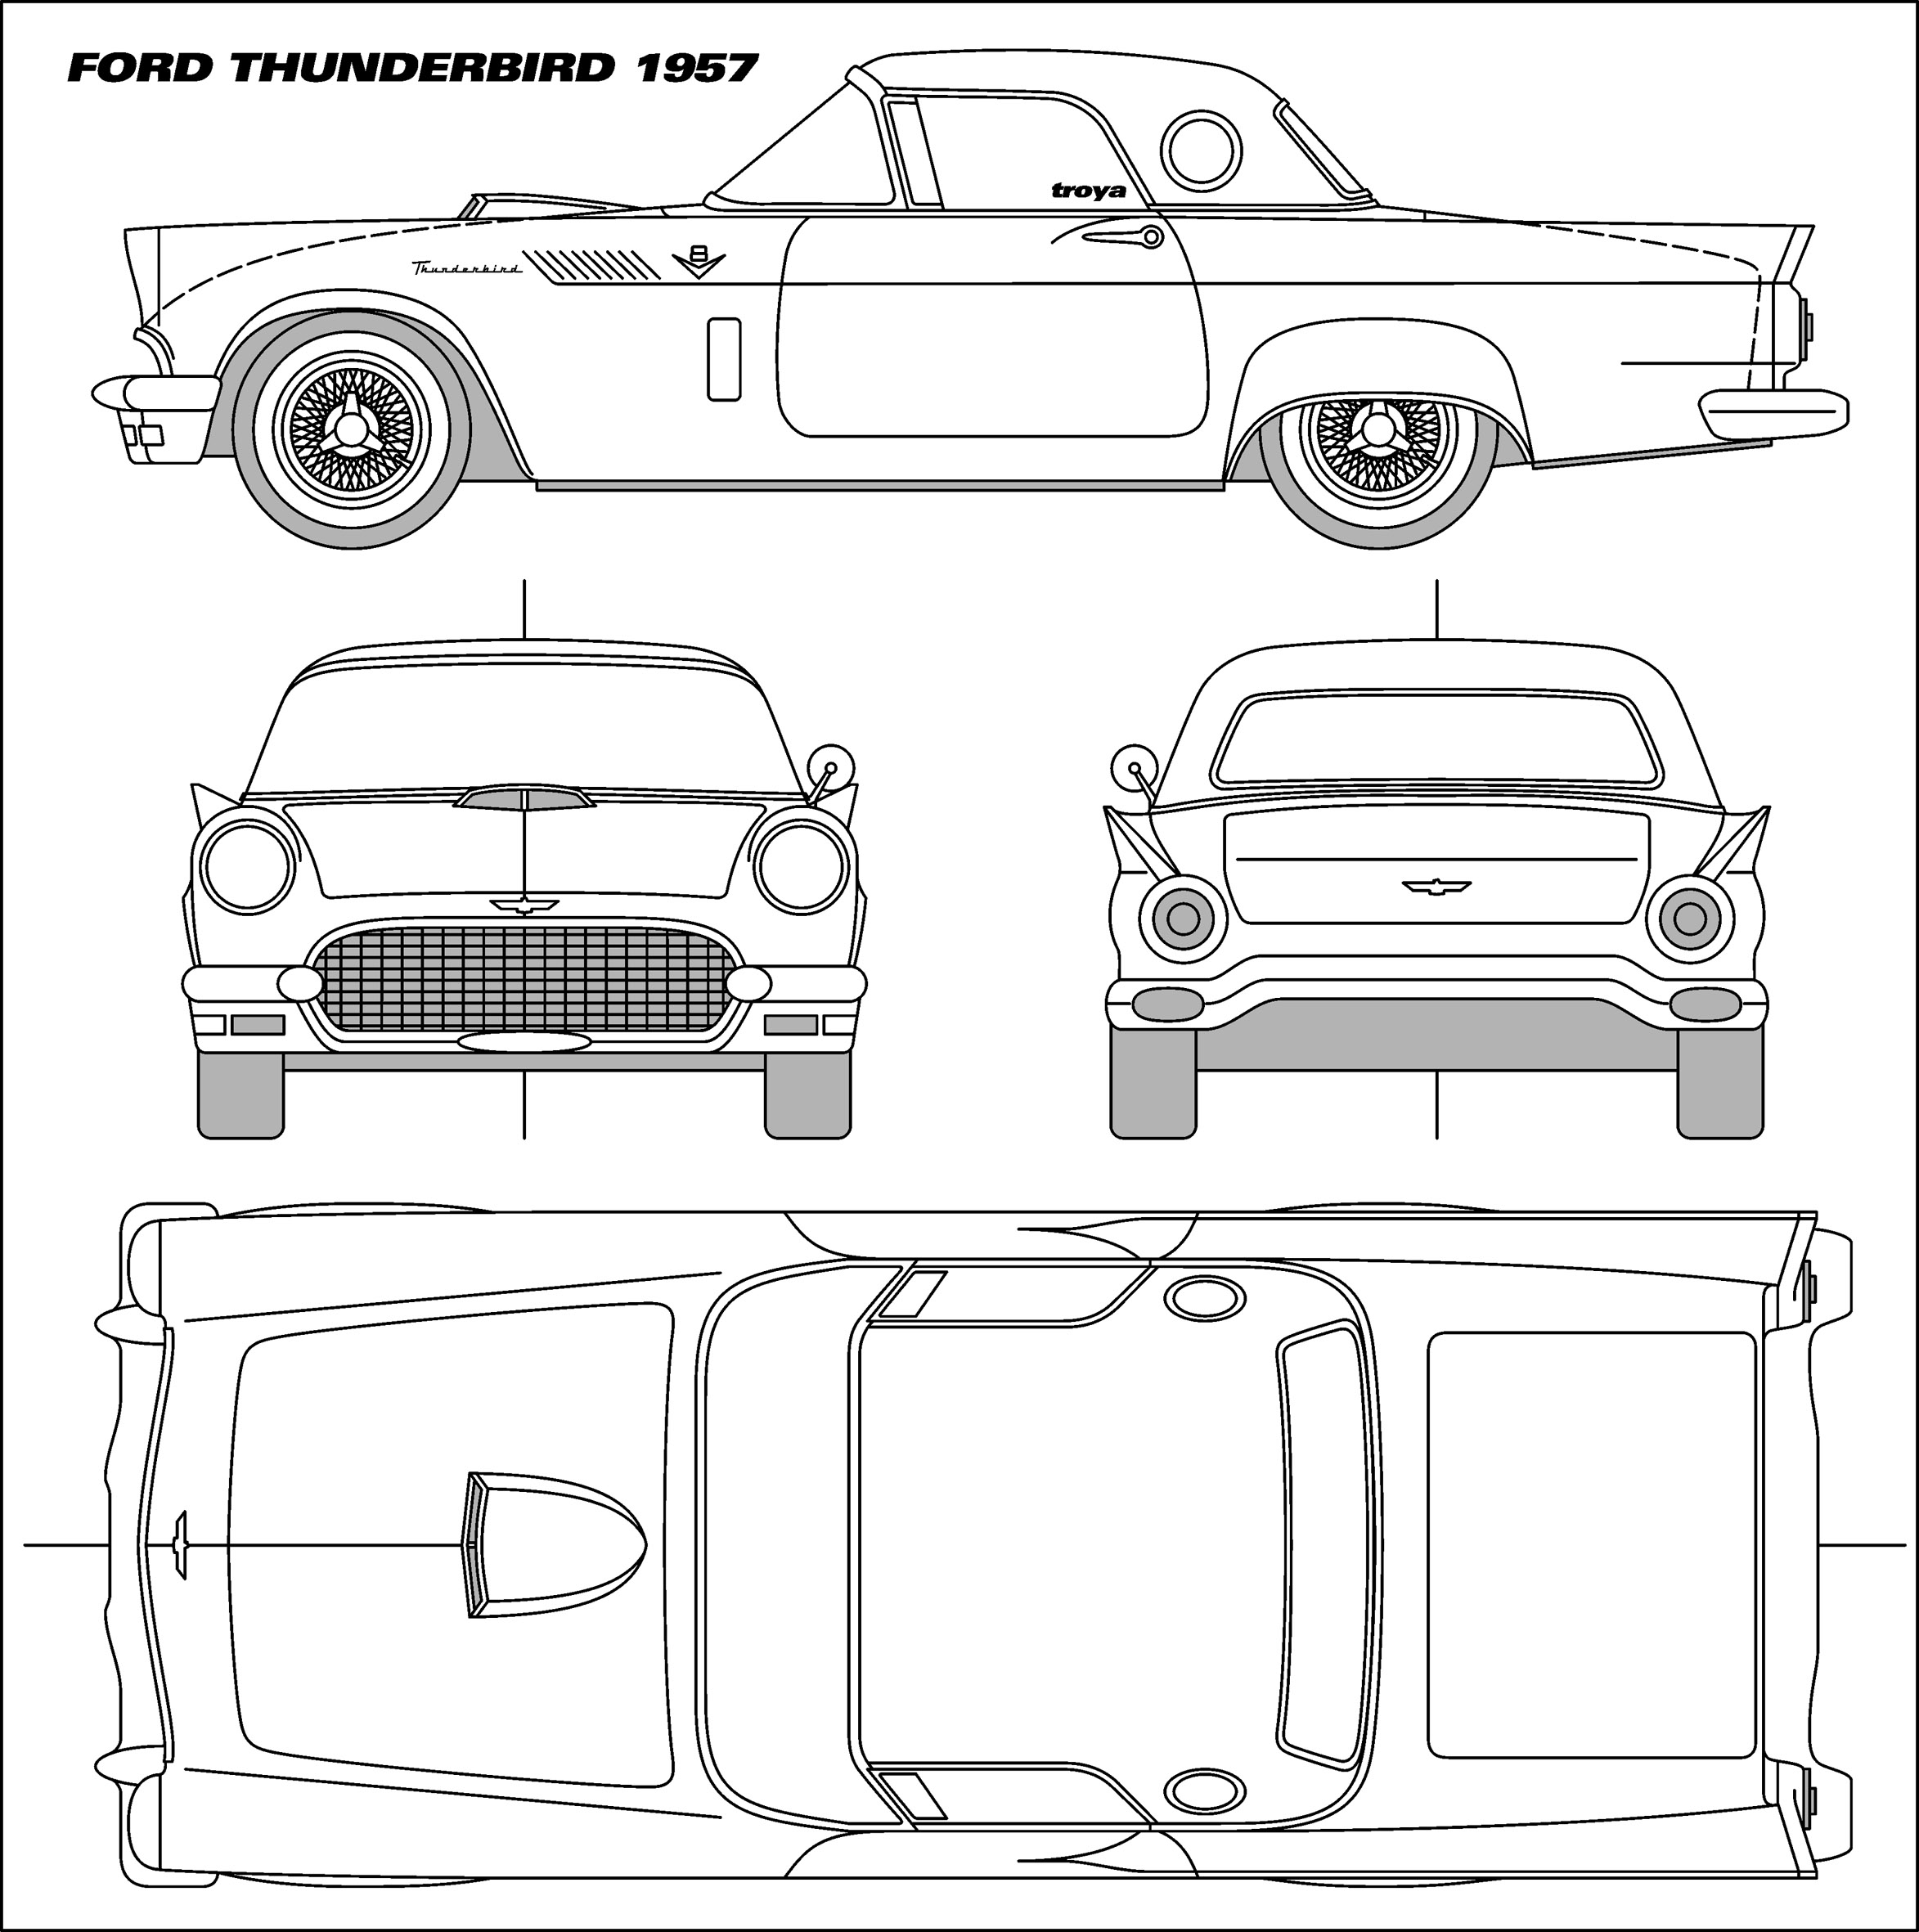 Ford Thunderbird Blueprint